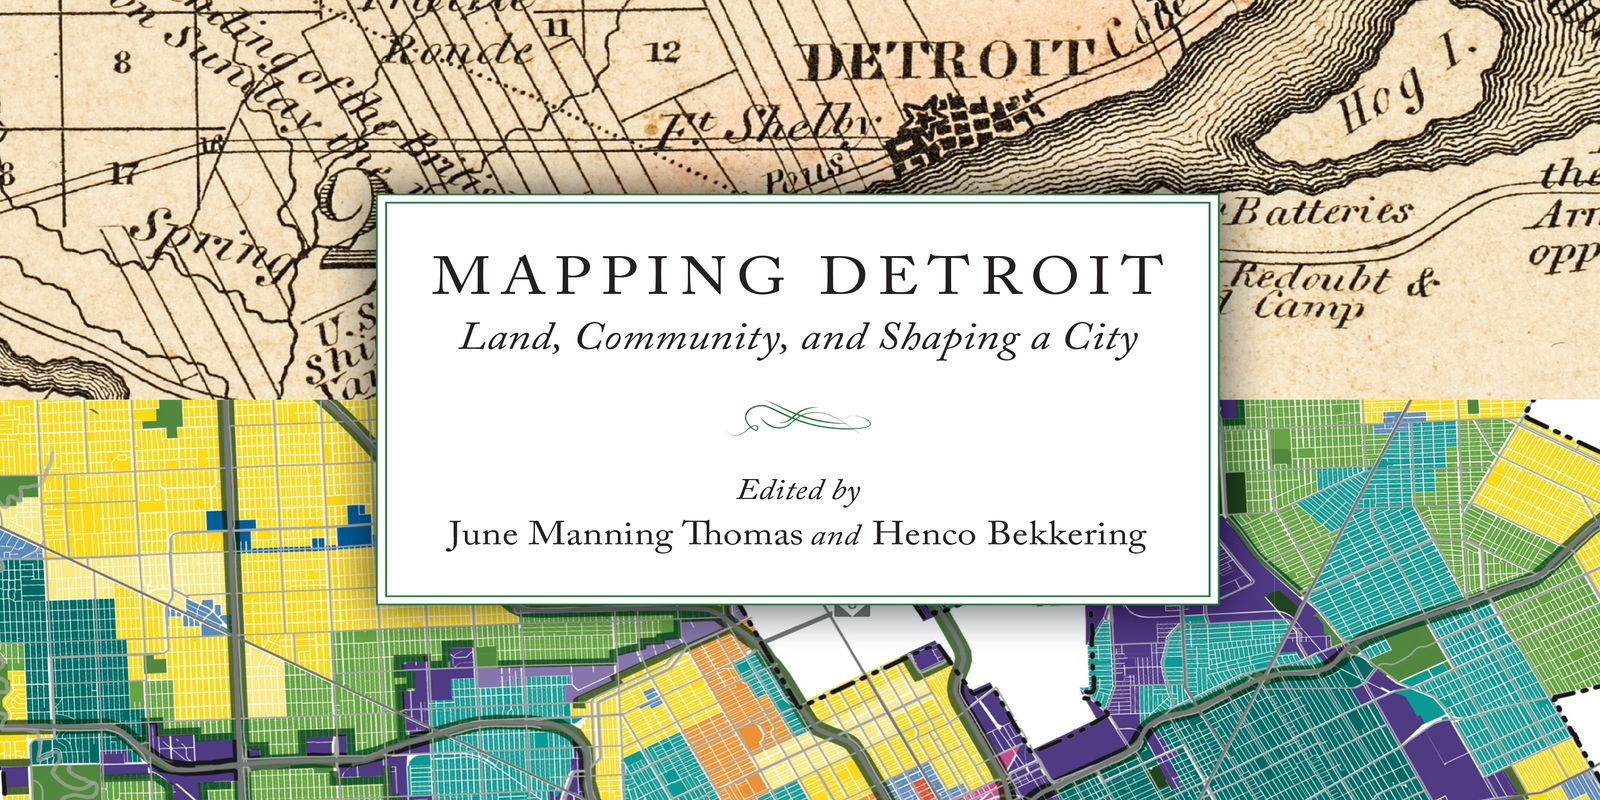 Detroit turns to new maps to understand itself on memphis map, united states map, duluth map, chicago map, toronto map, henry ford hospital map, royal oak map, great lakes map, cincinnati map, compton map, michigan map, las vegas map, pittsburgh map, atlanta map, quebec map, baltimore map, highland park map, usa map, st louis on map, new york map,